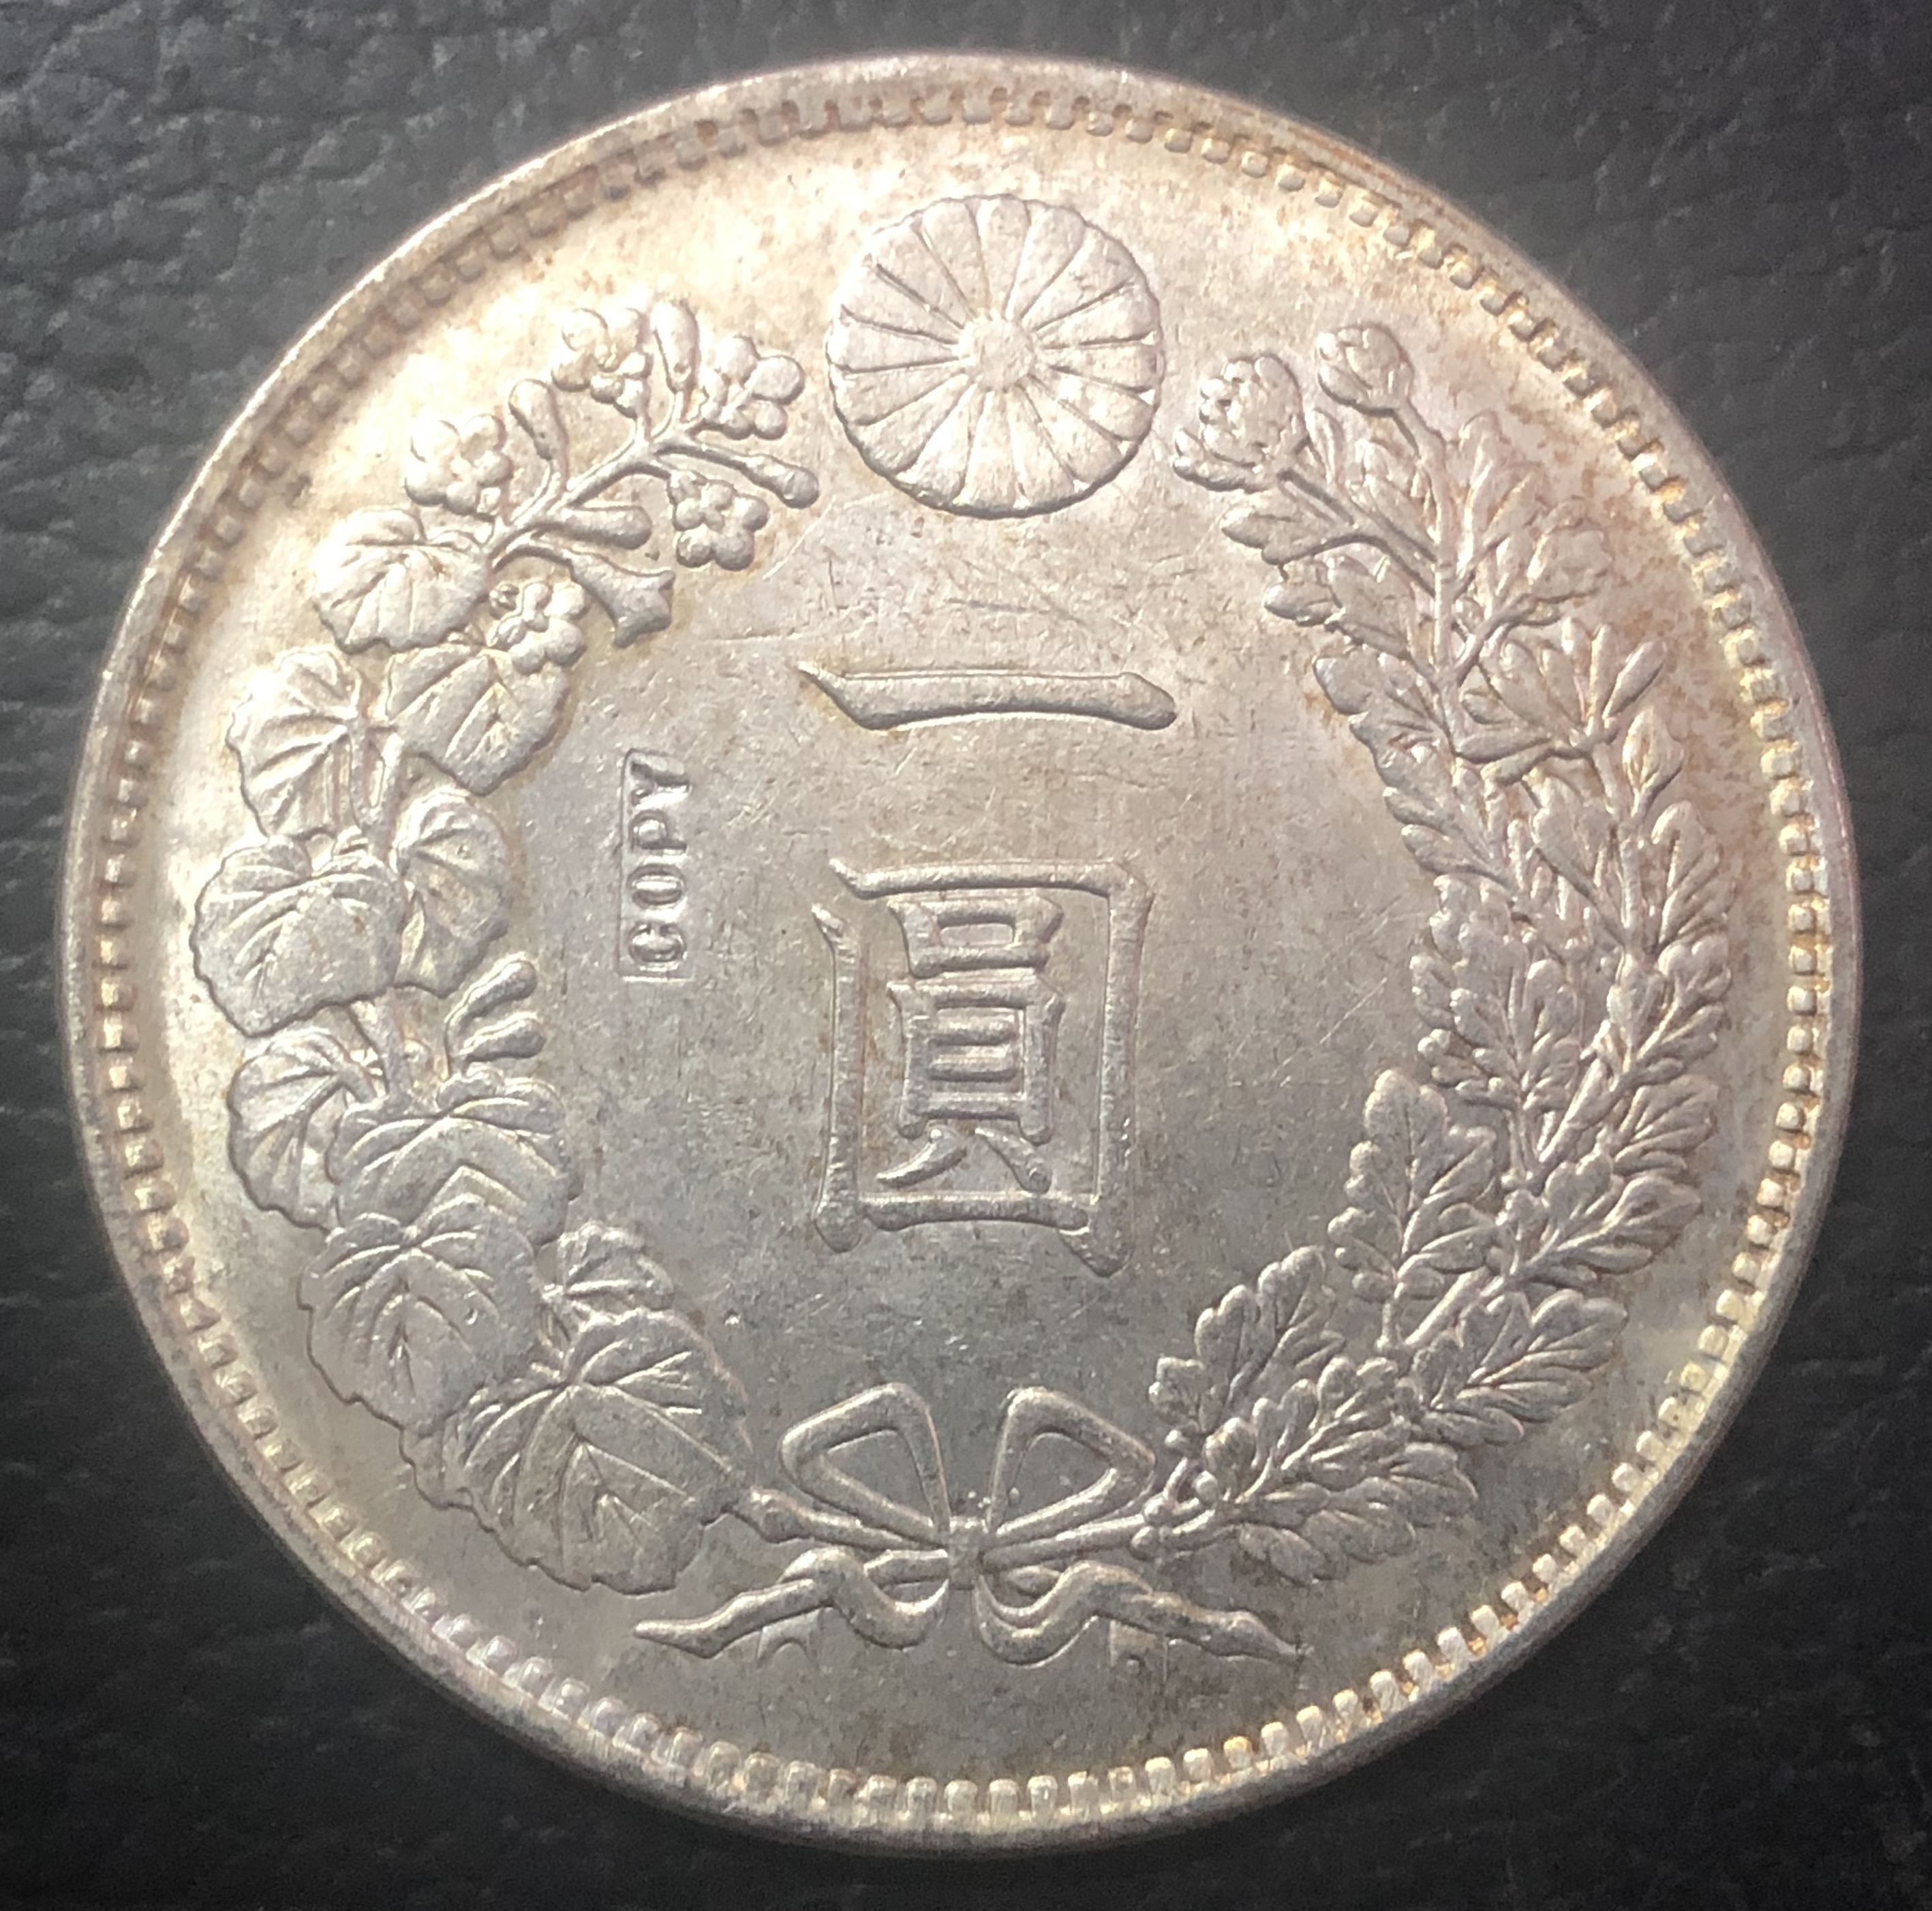 1894 (MeiJi 27 years) Janpan Silver coin Copy